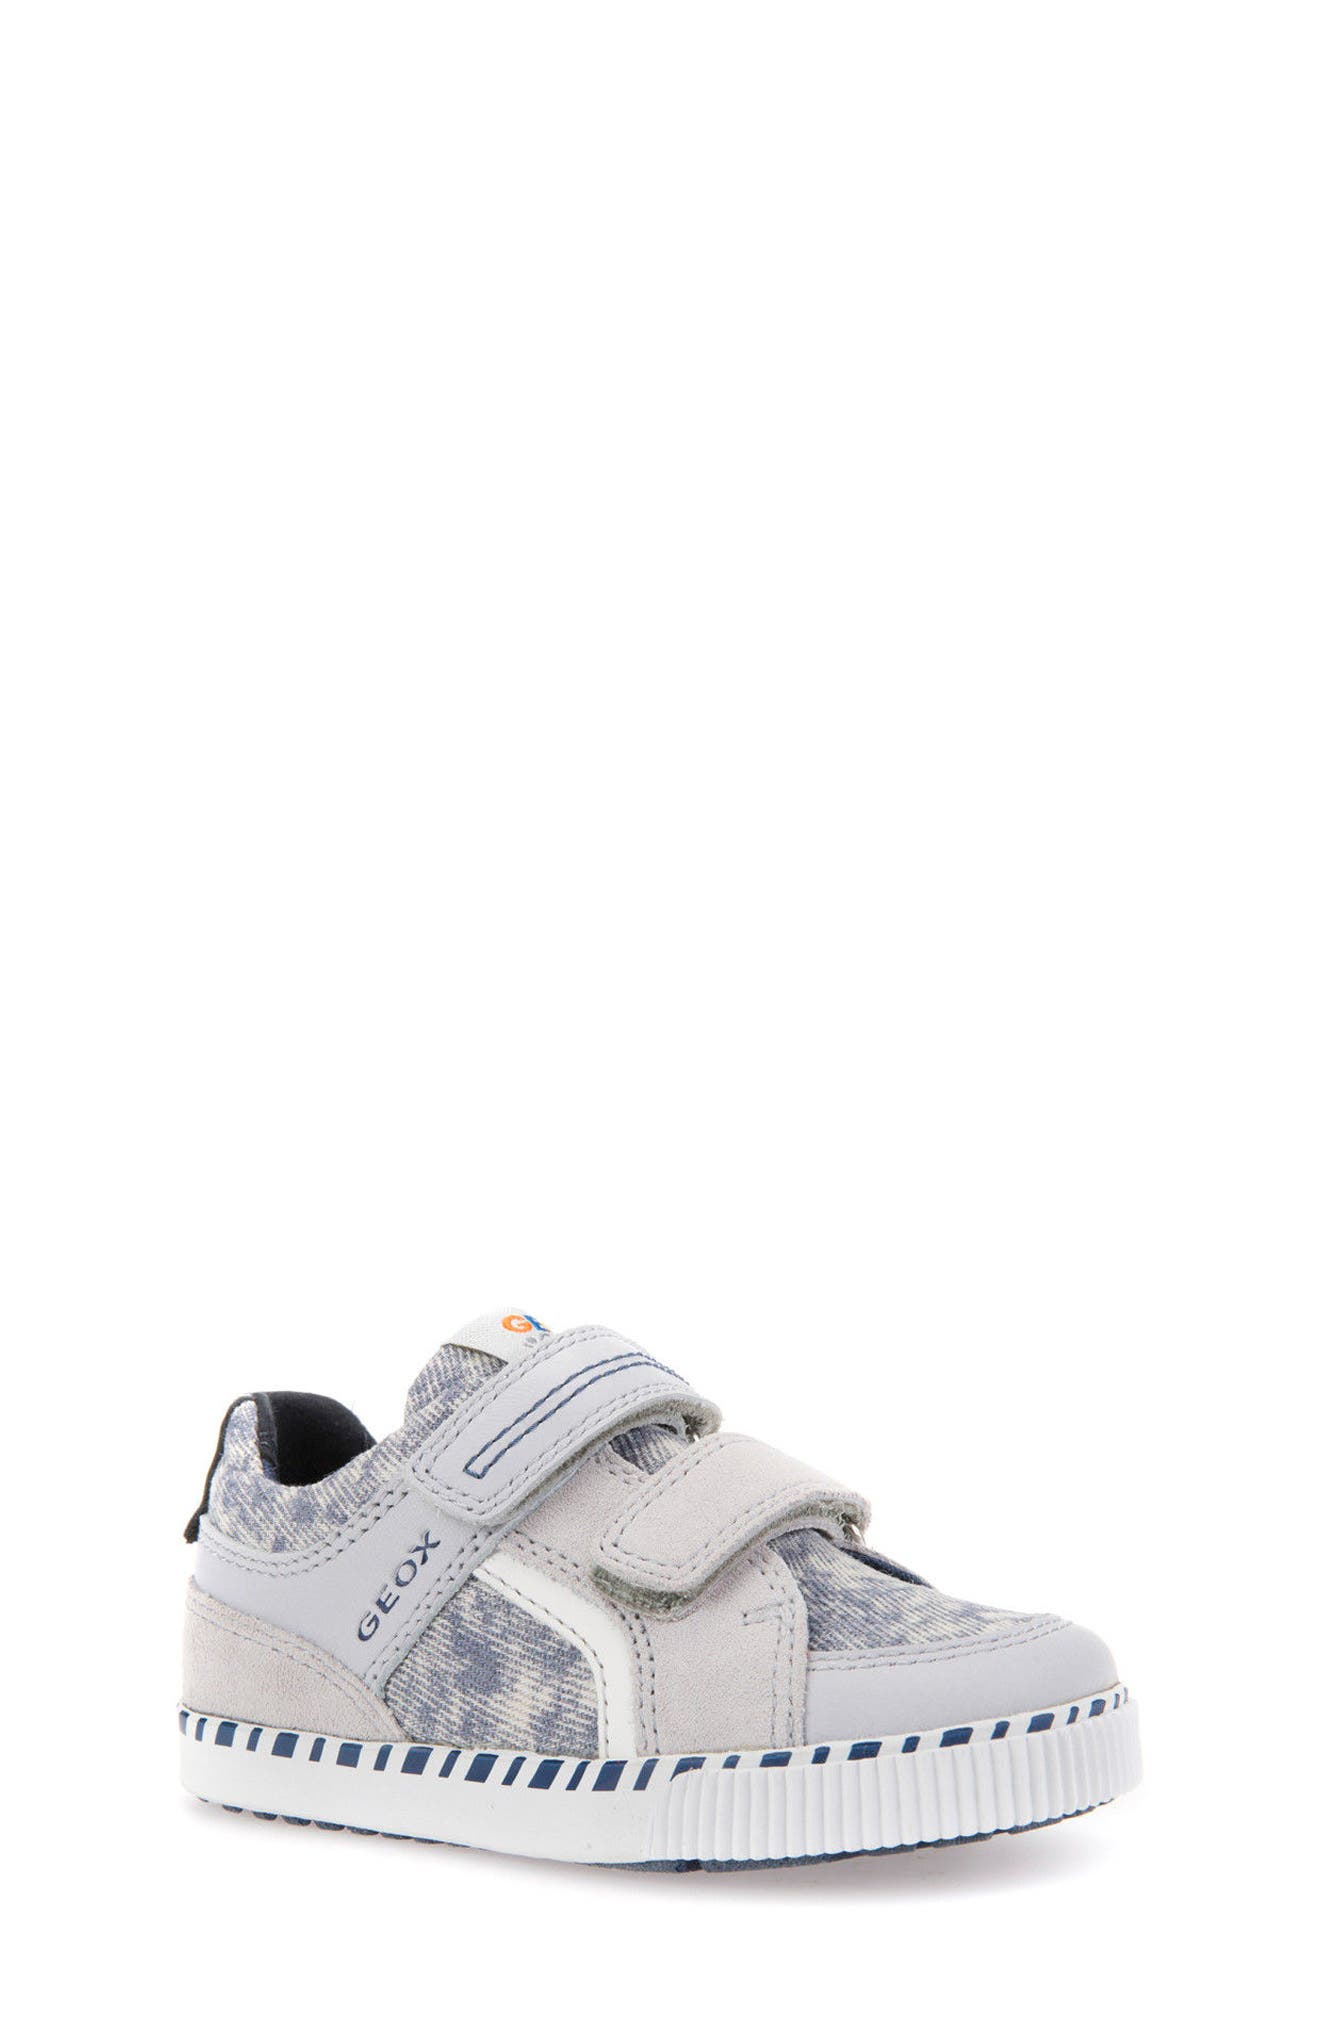 Kilwi Knit Sneaker,                         Main,                         color, Light Grey/ White